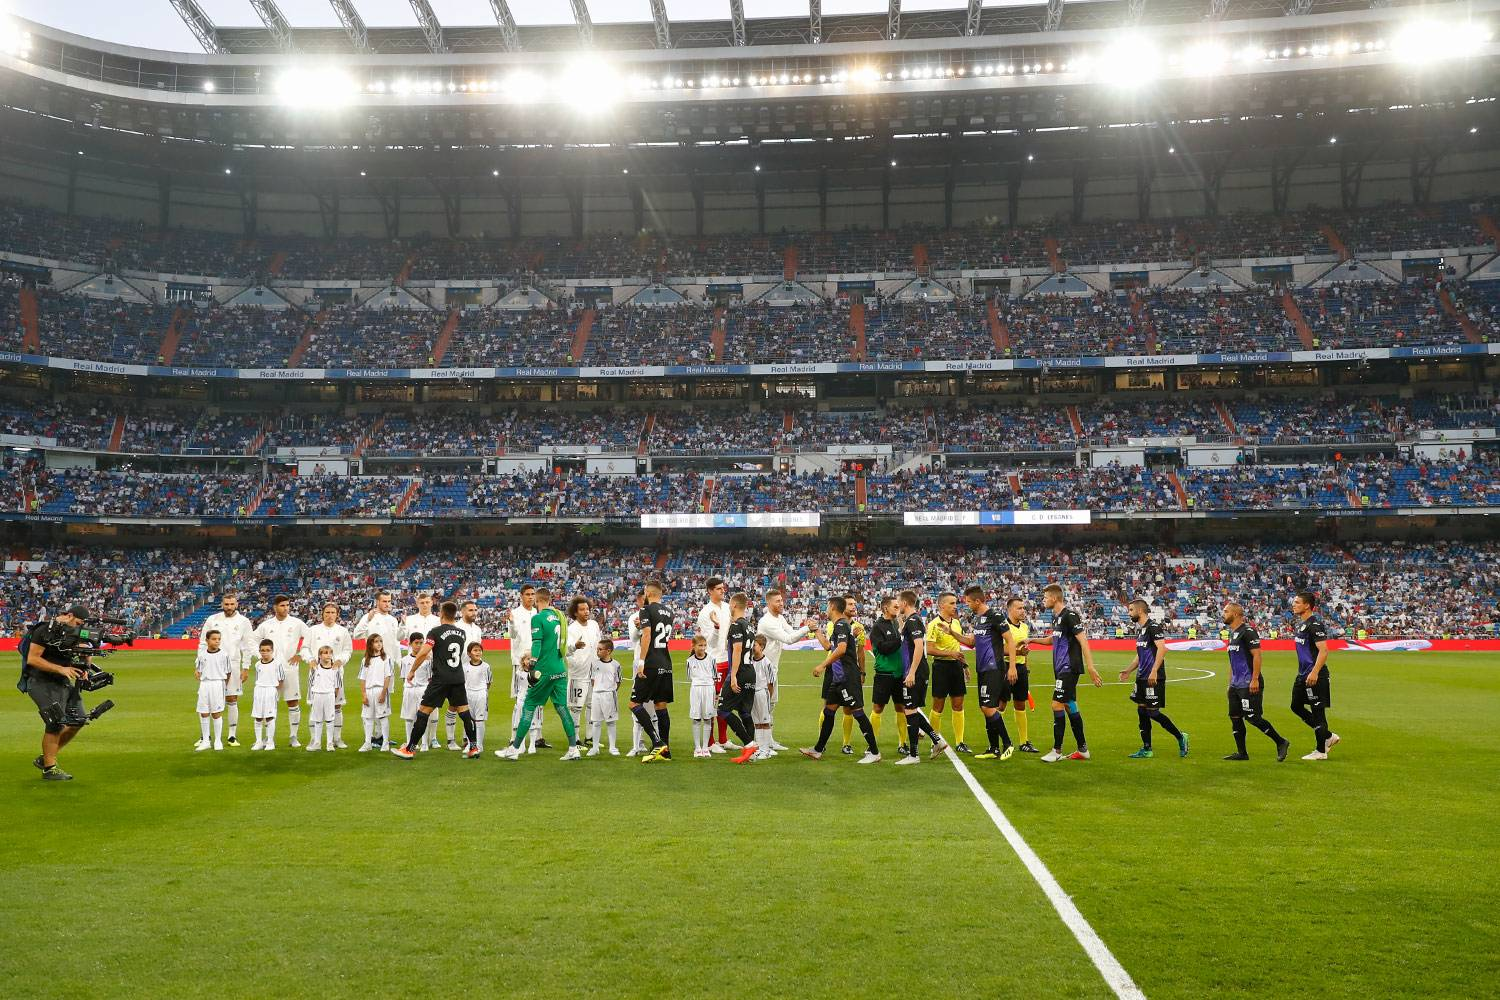 Real Madrid - Real Madrid - Leganés - 02-09-2018